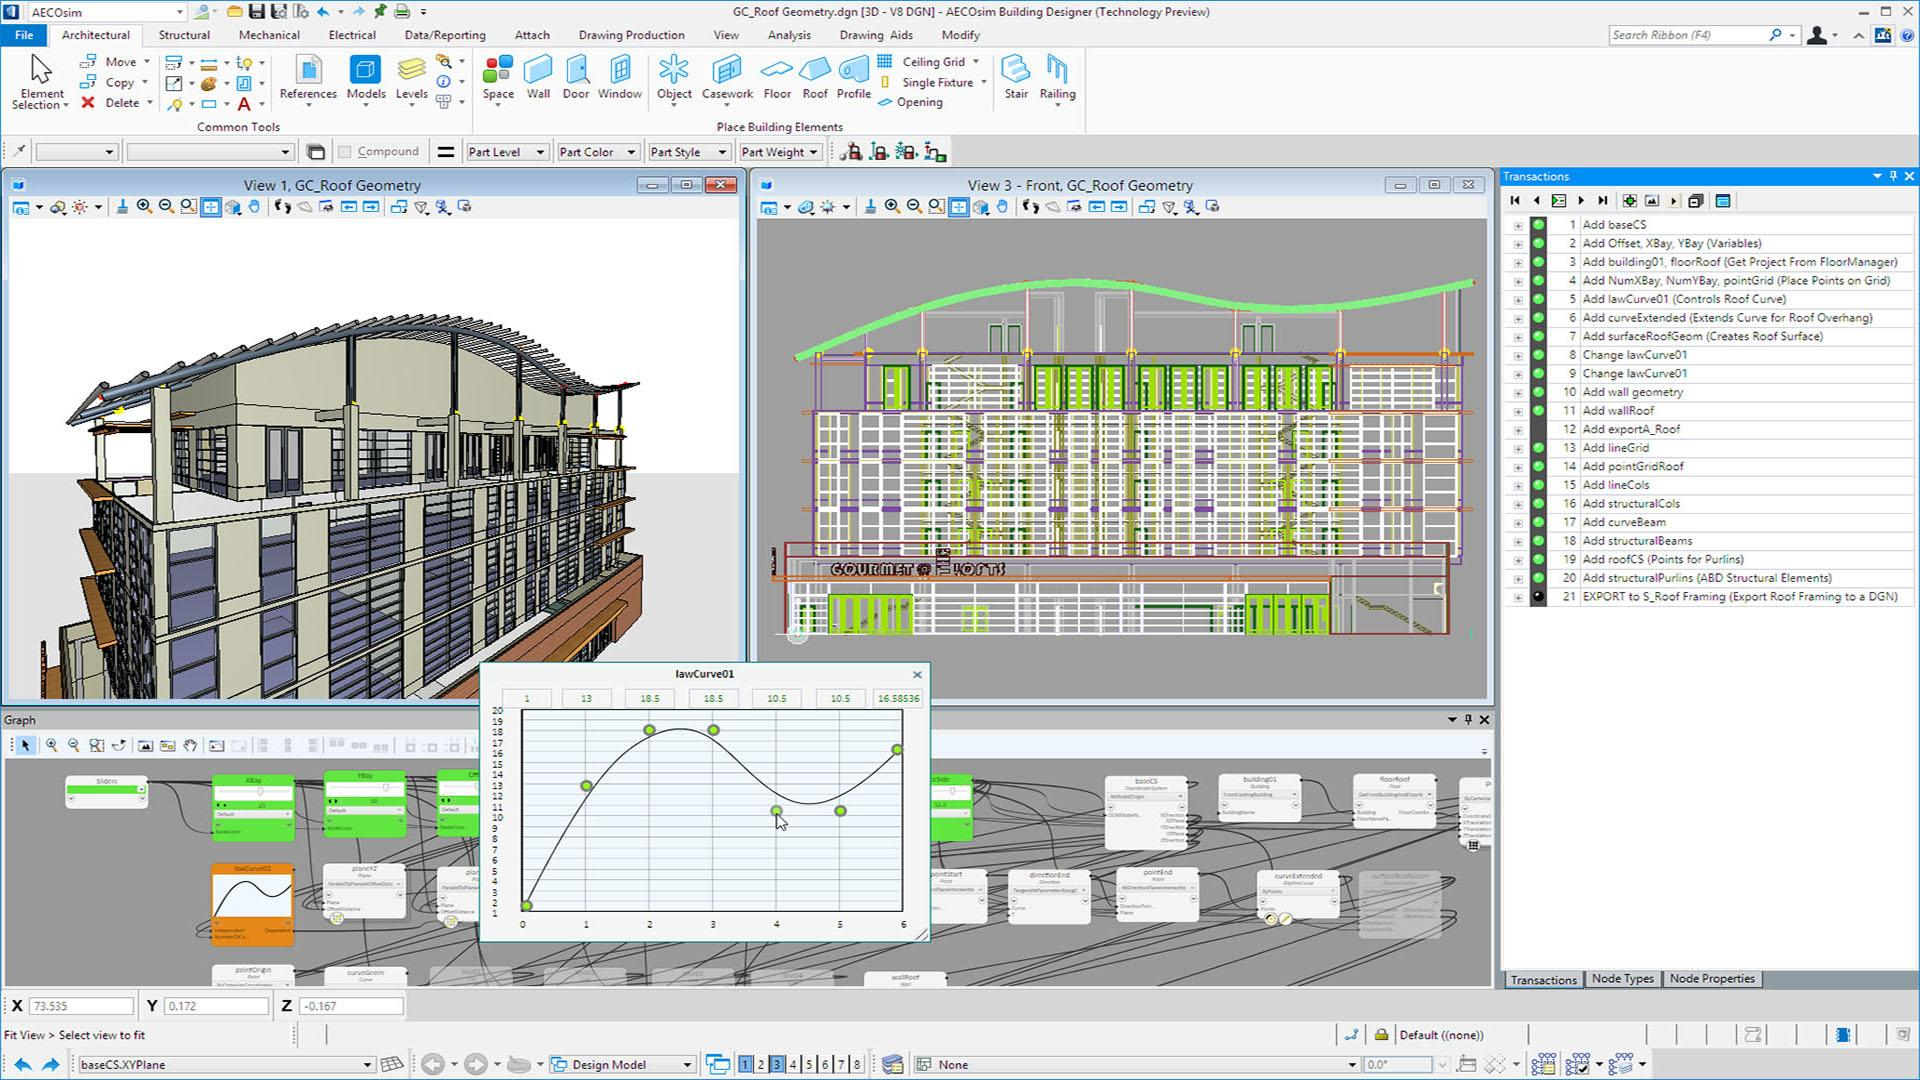 Easily Migrate to AECOsim Building Designer CONNECT Edition